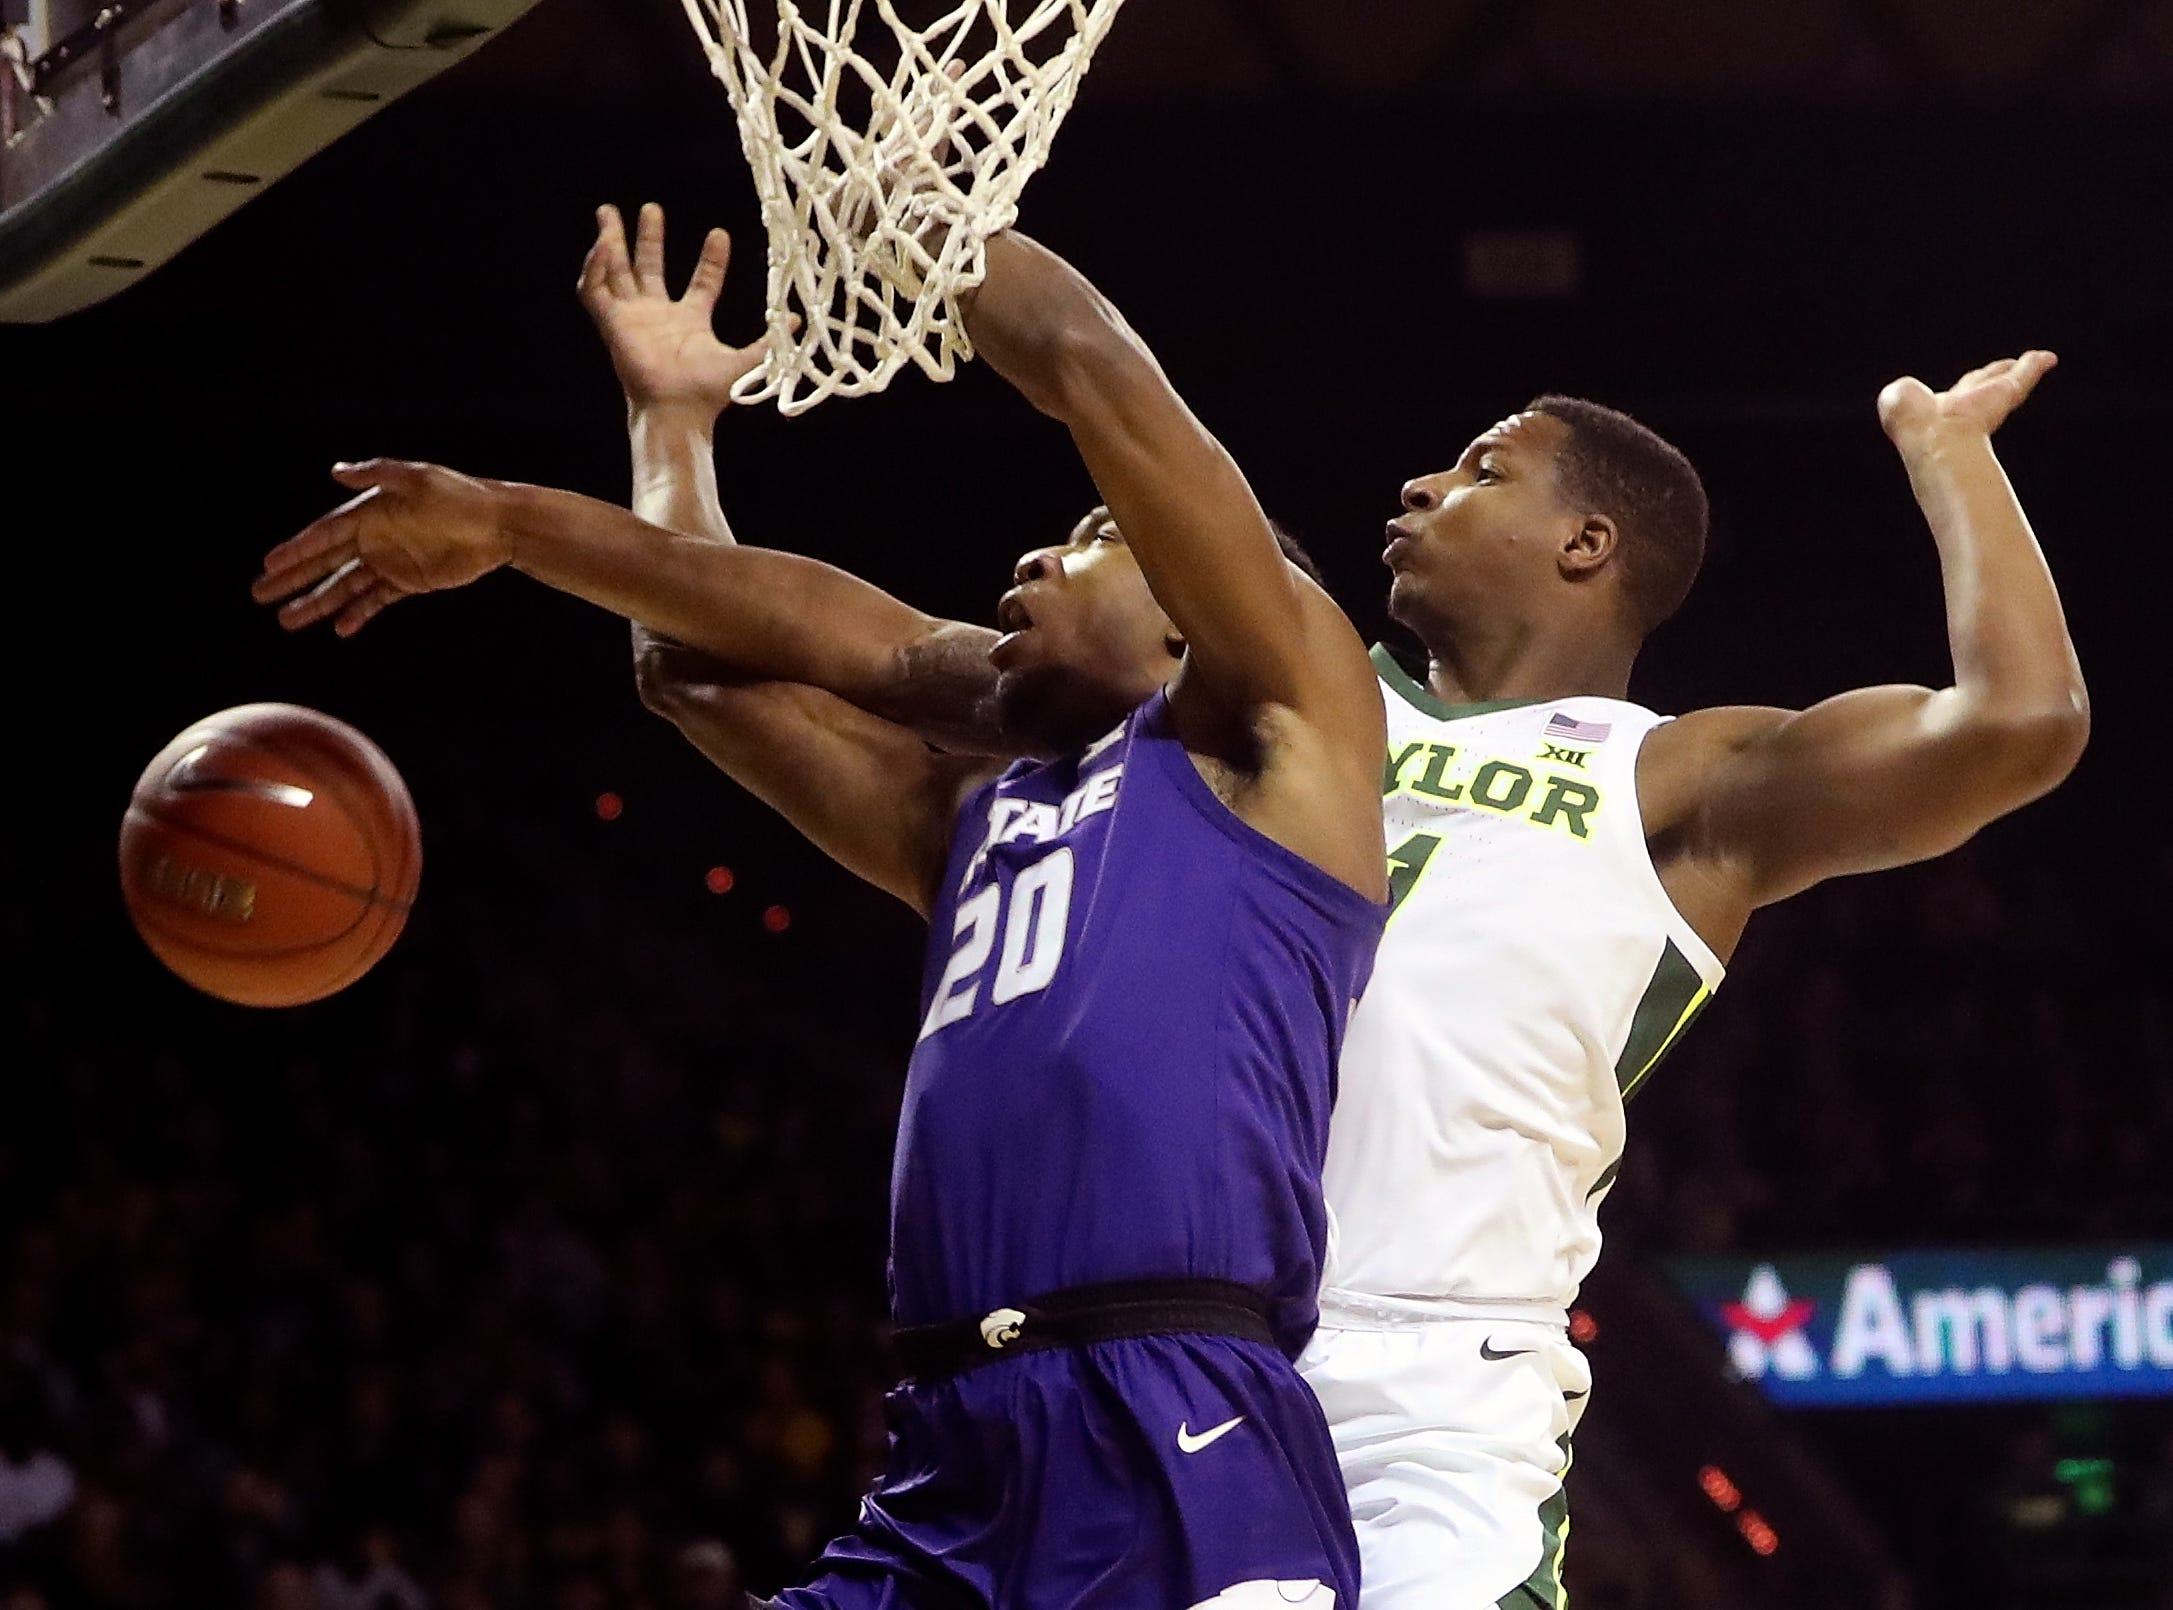 Feb. 9: Baylor Bears guard Mark Vital (11) blocks the shot of Kansas State Wildcats forward Xavier Sneed (20) during the first half at Ferrell Center.